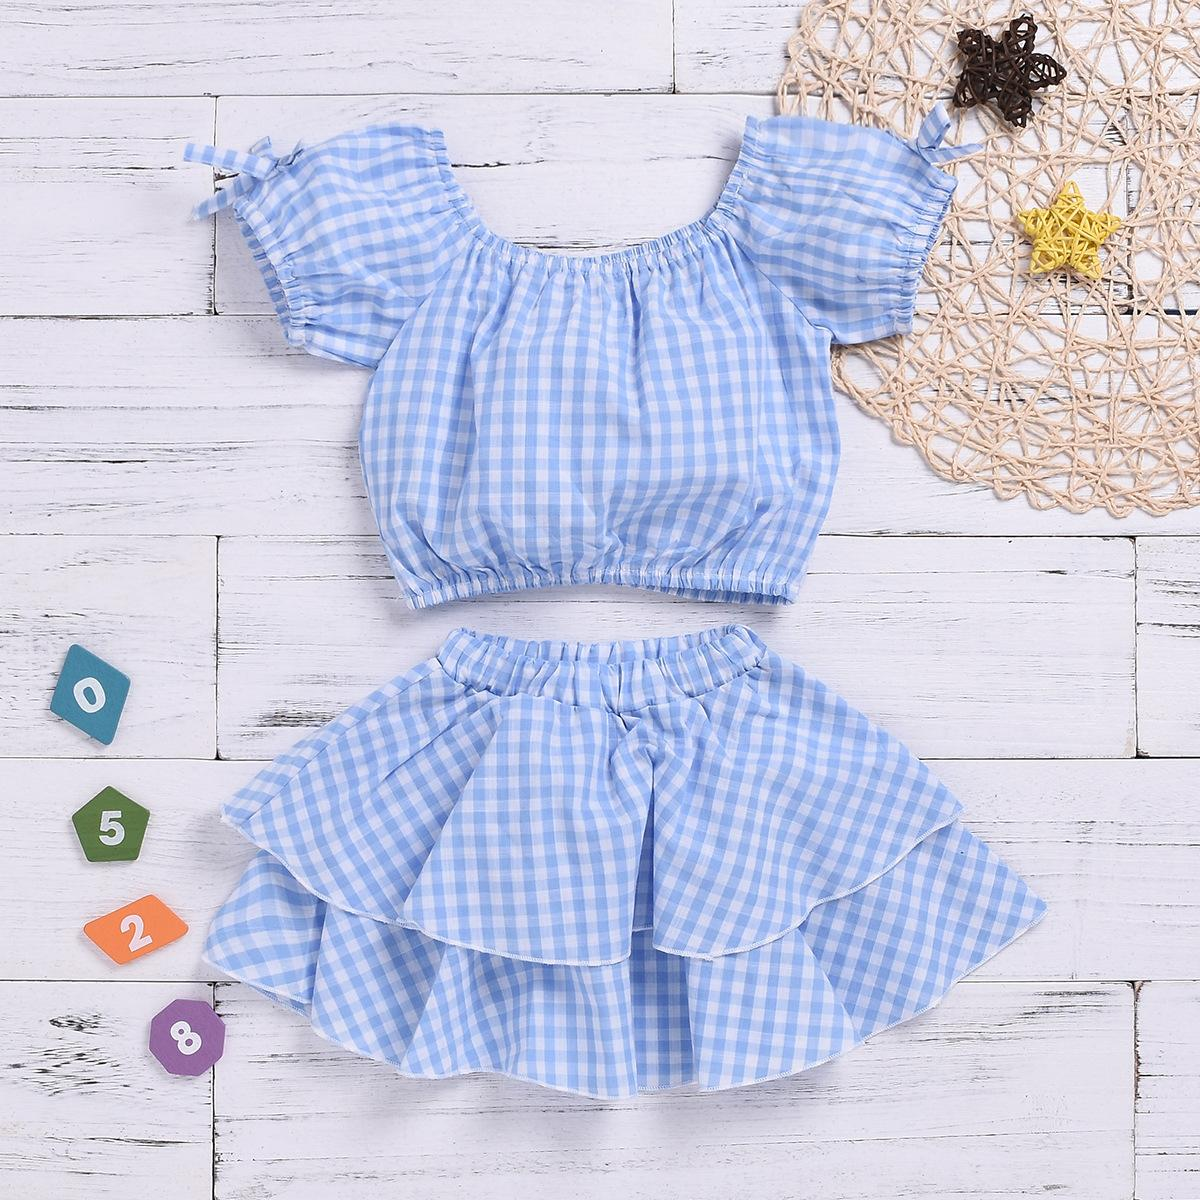 ee115388427 2019 Summer Style European And American Girls Plaid Skirt Two Piece ...